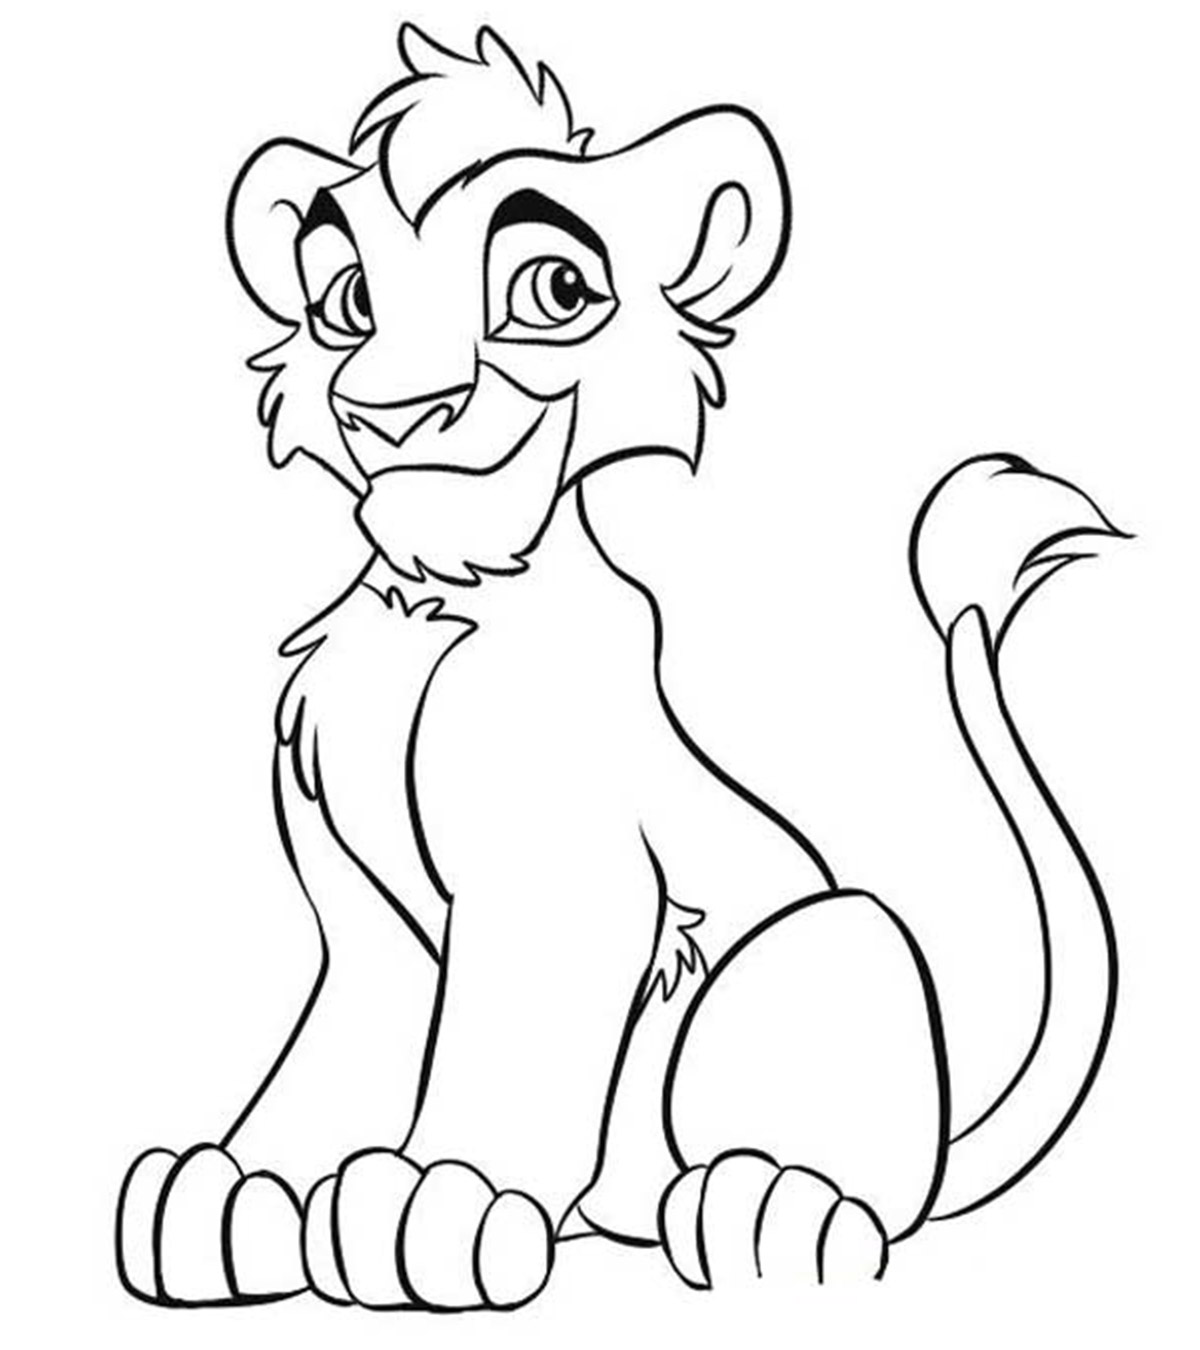 Top 3 Free Printable The Lion King Coloring Pages Online